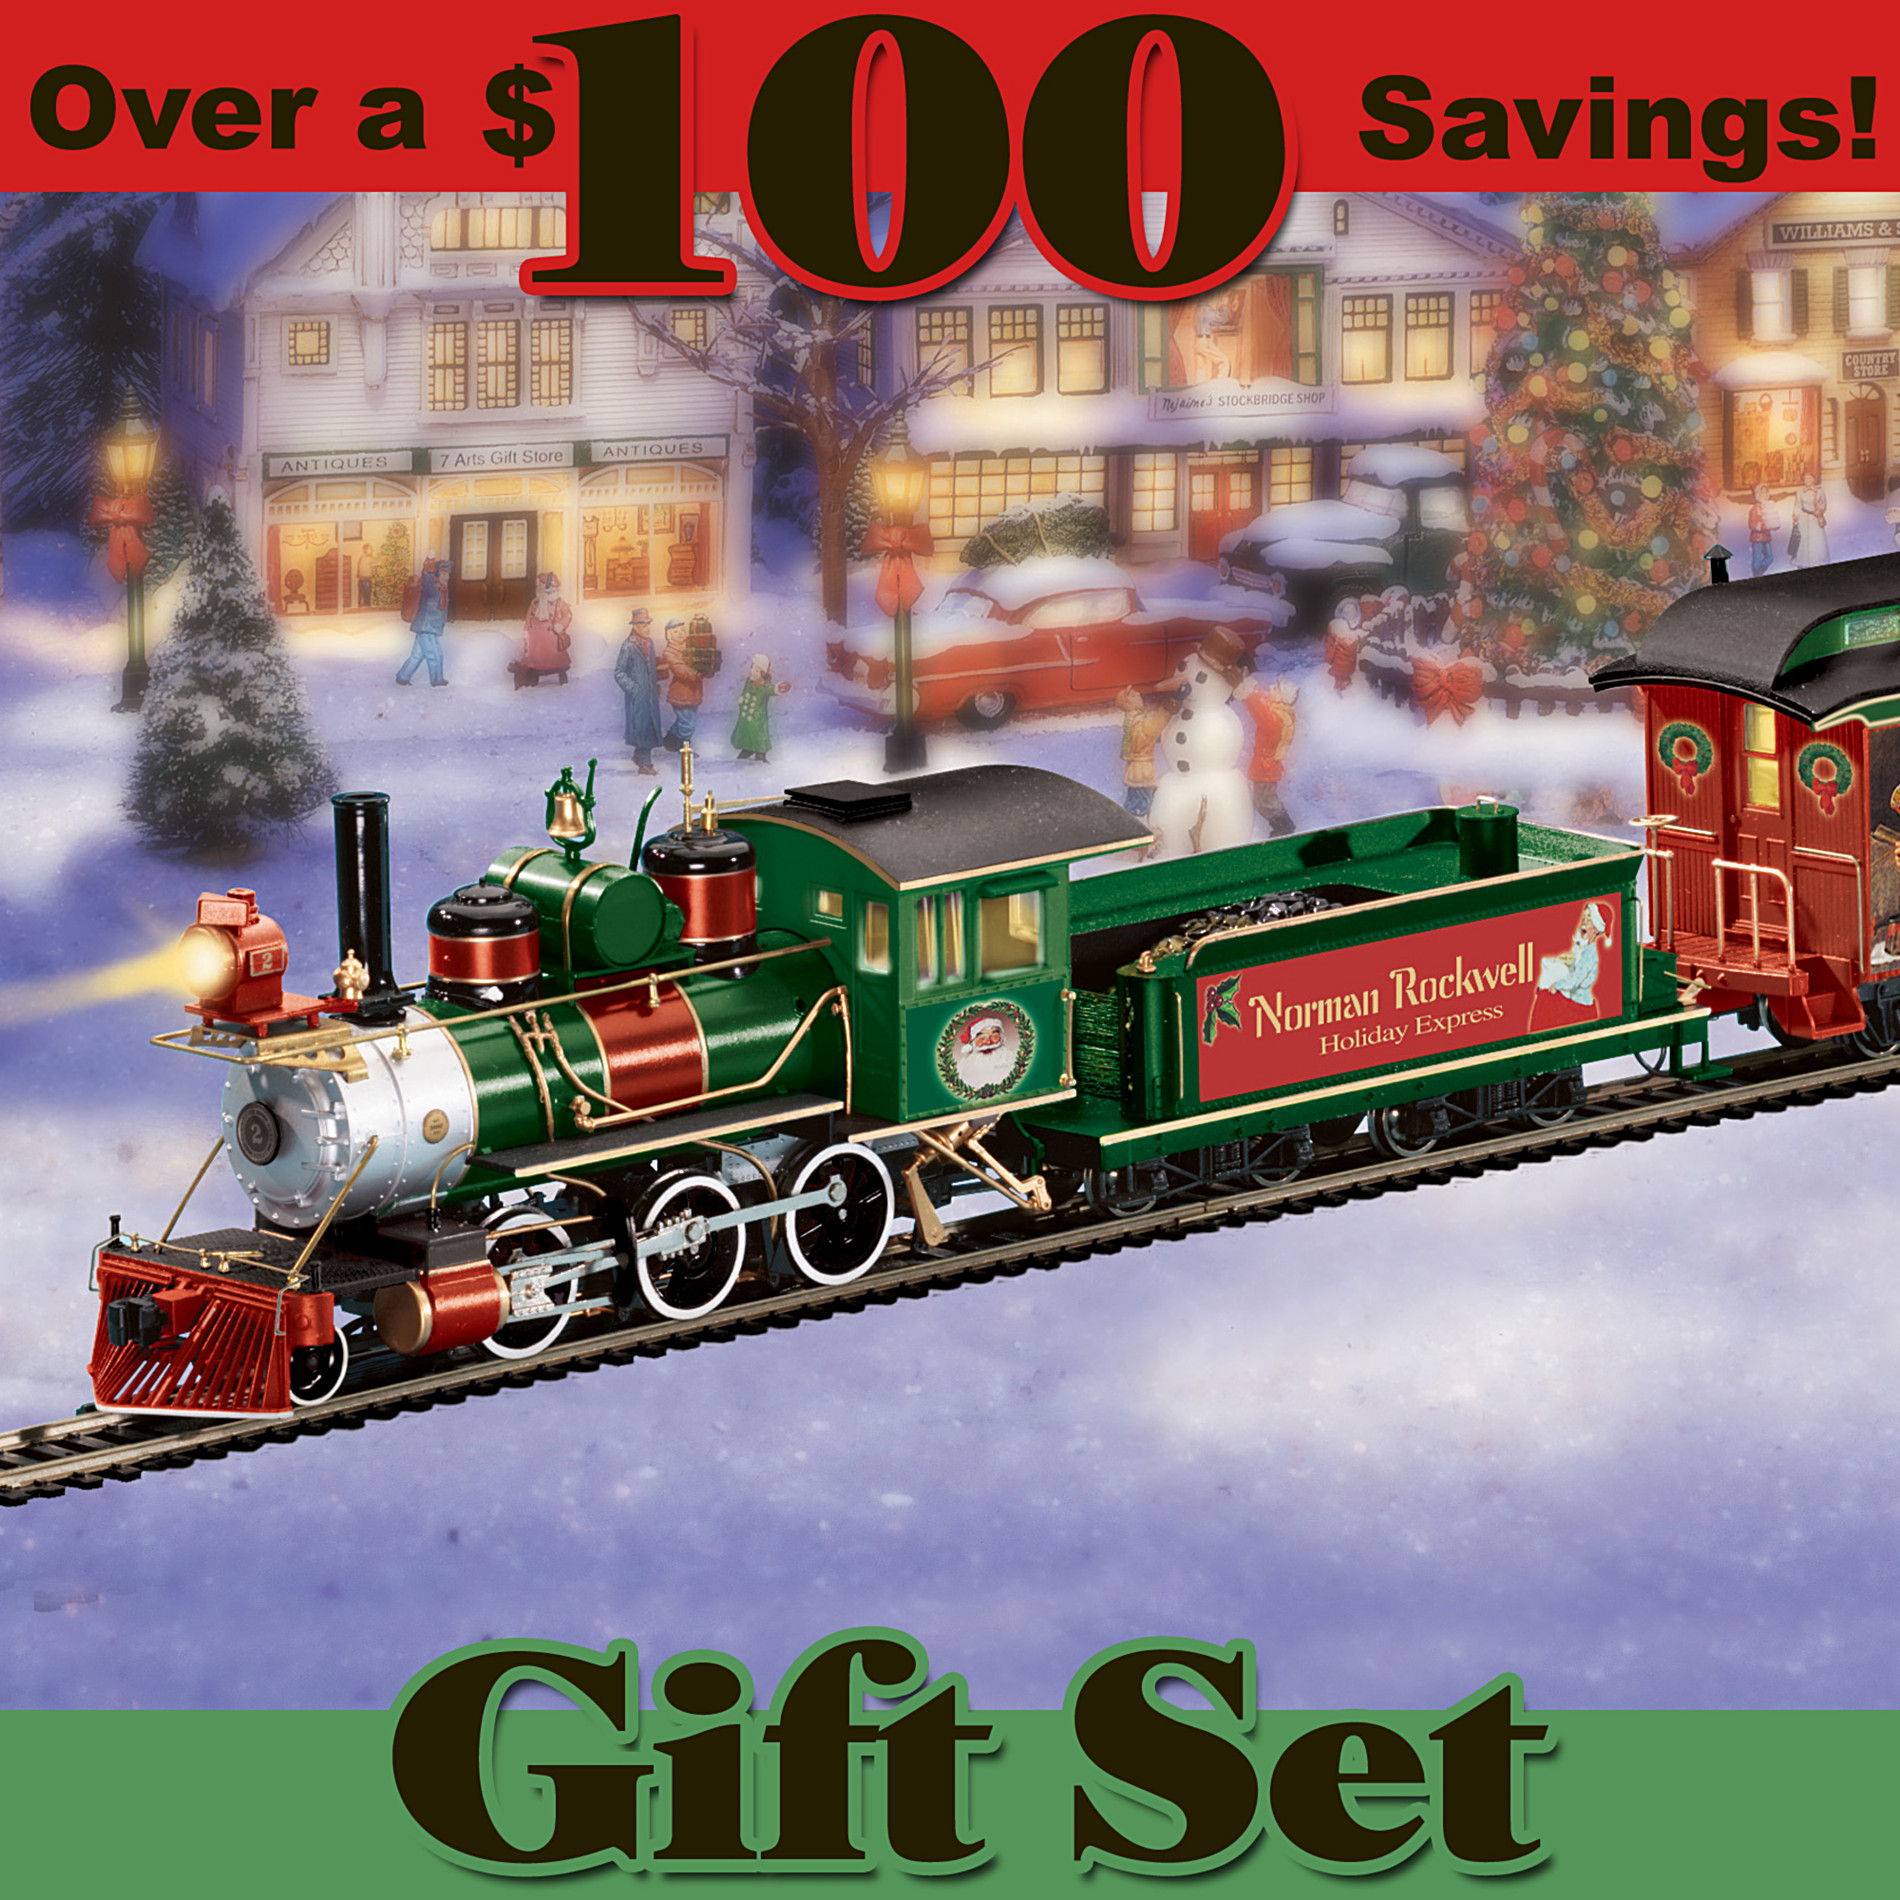 Hawthorne Village Norman Rockwell Holiday Express: Collectible Electric Train Set at Sears.com